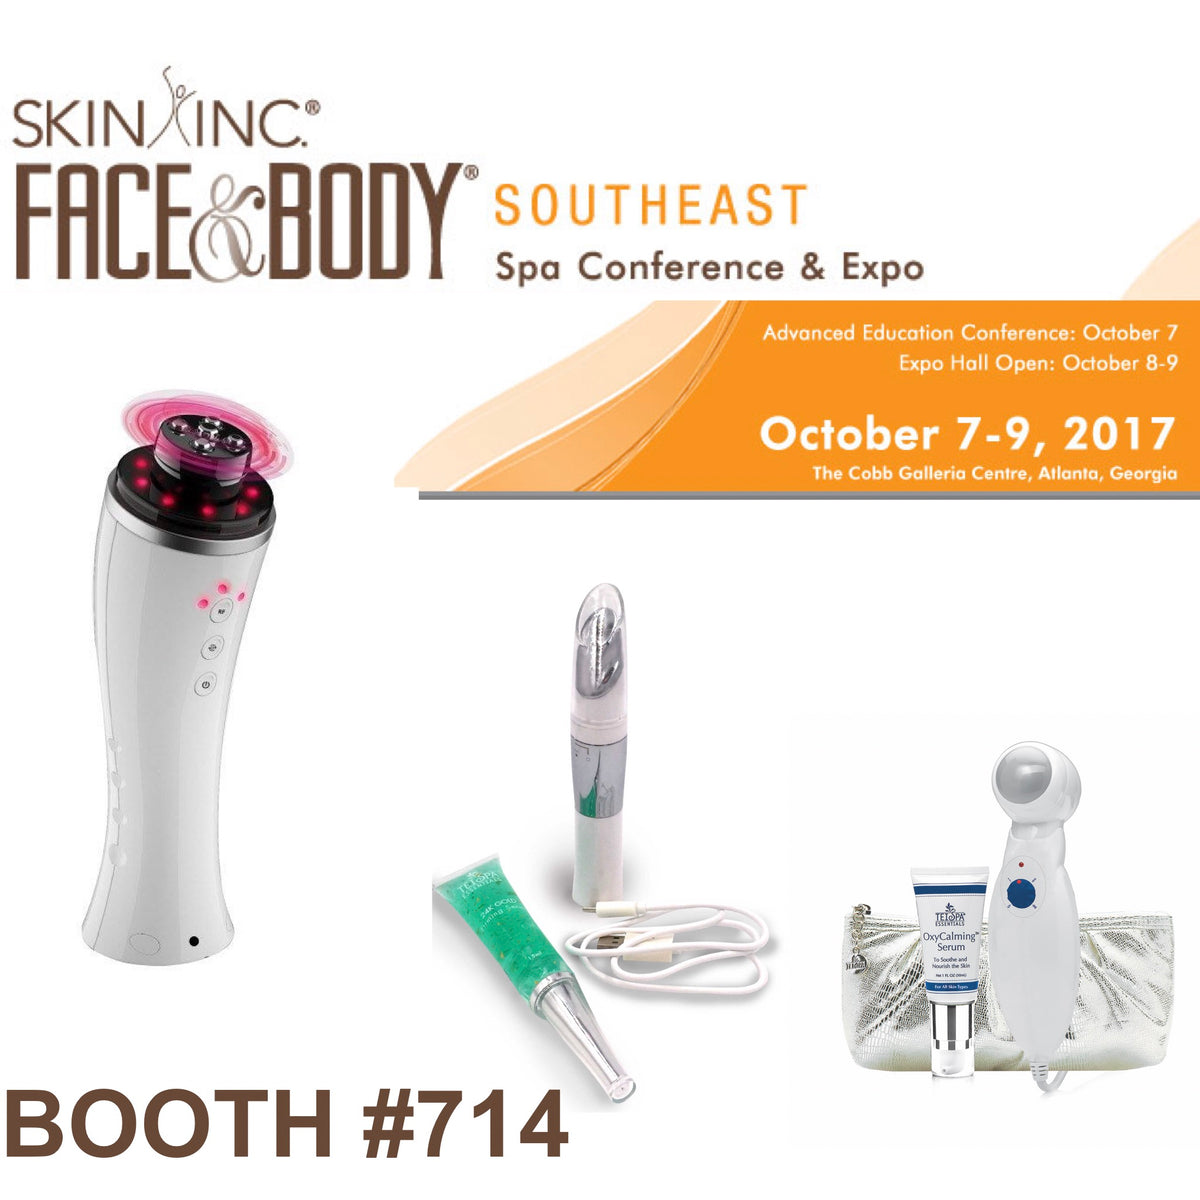 Hey Atlanta, Georgia! Register Early For The Face & Body Expo to Receive a Discount!